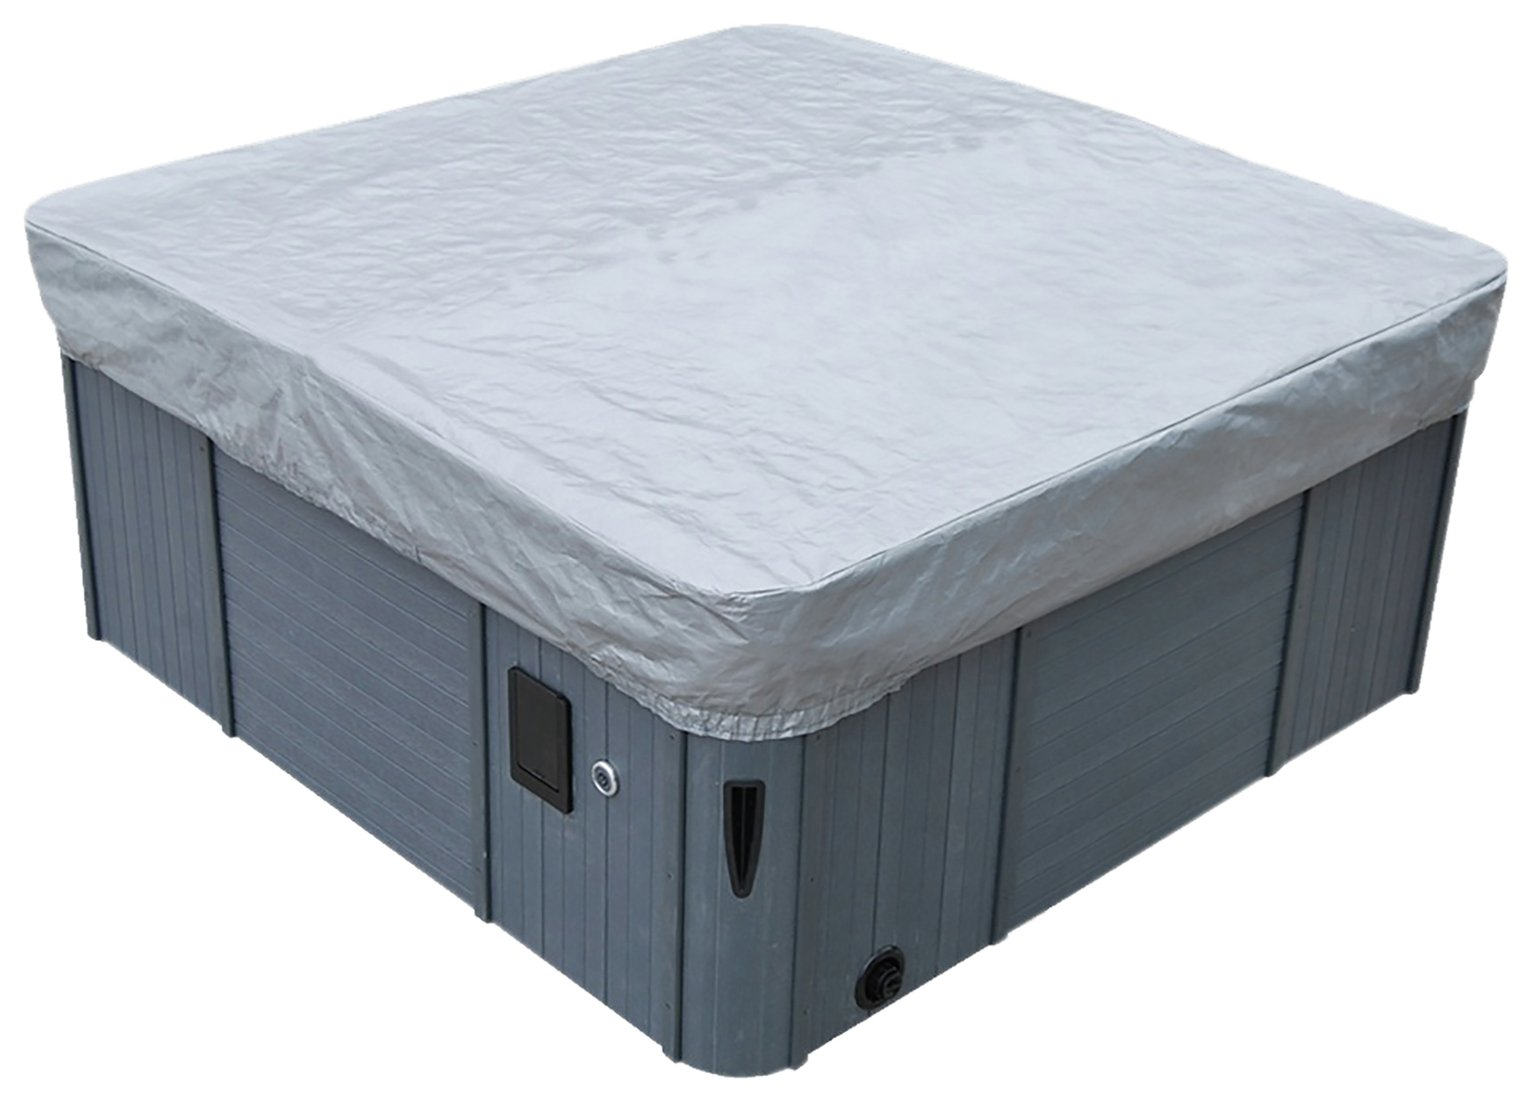 Canadian Spa Hot Tub Cover Cap review